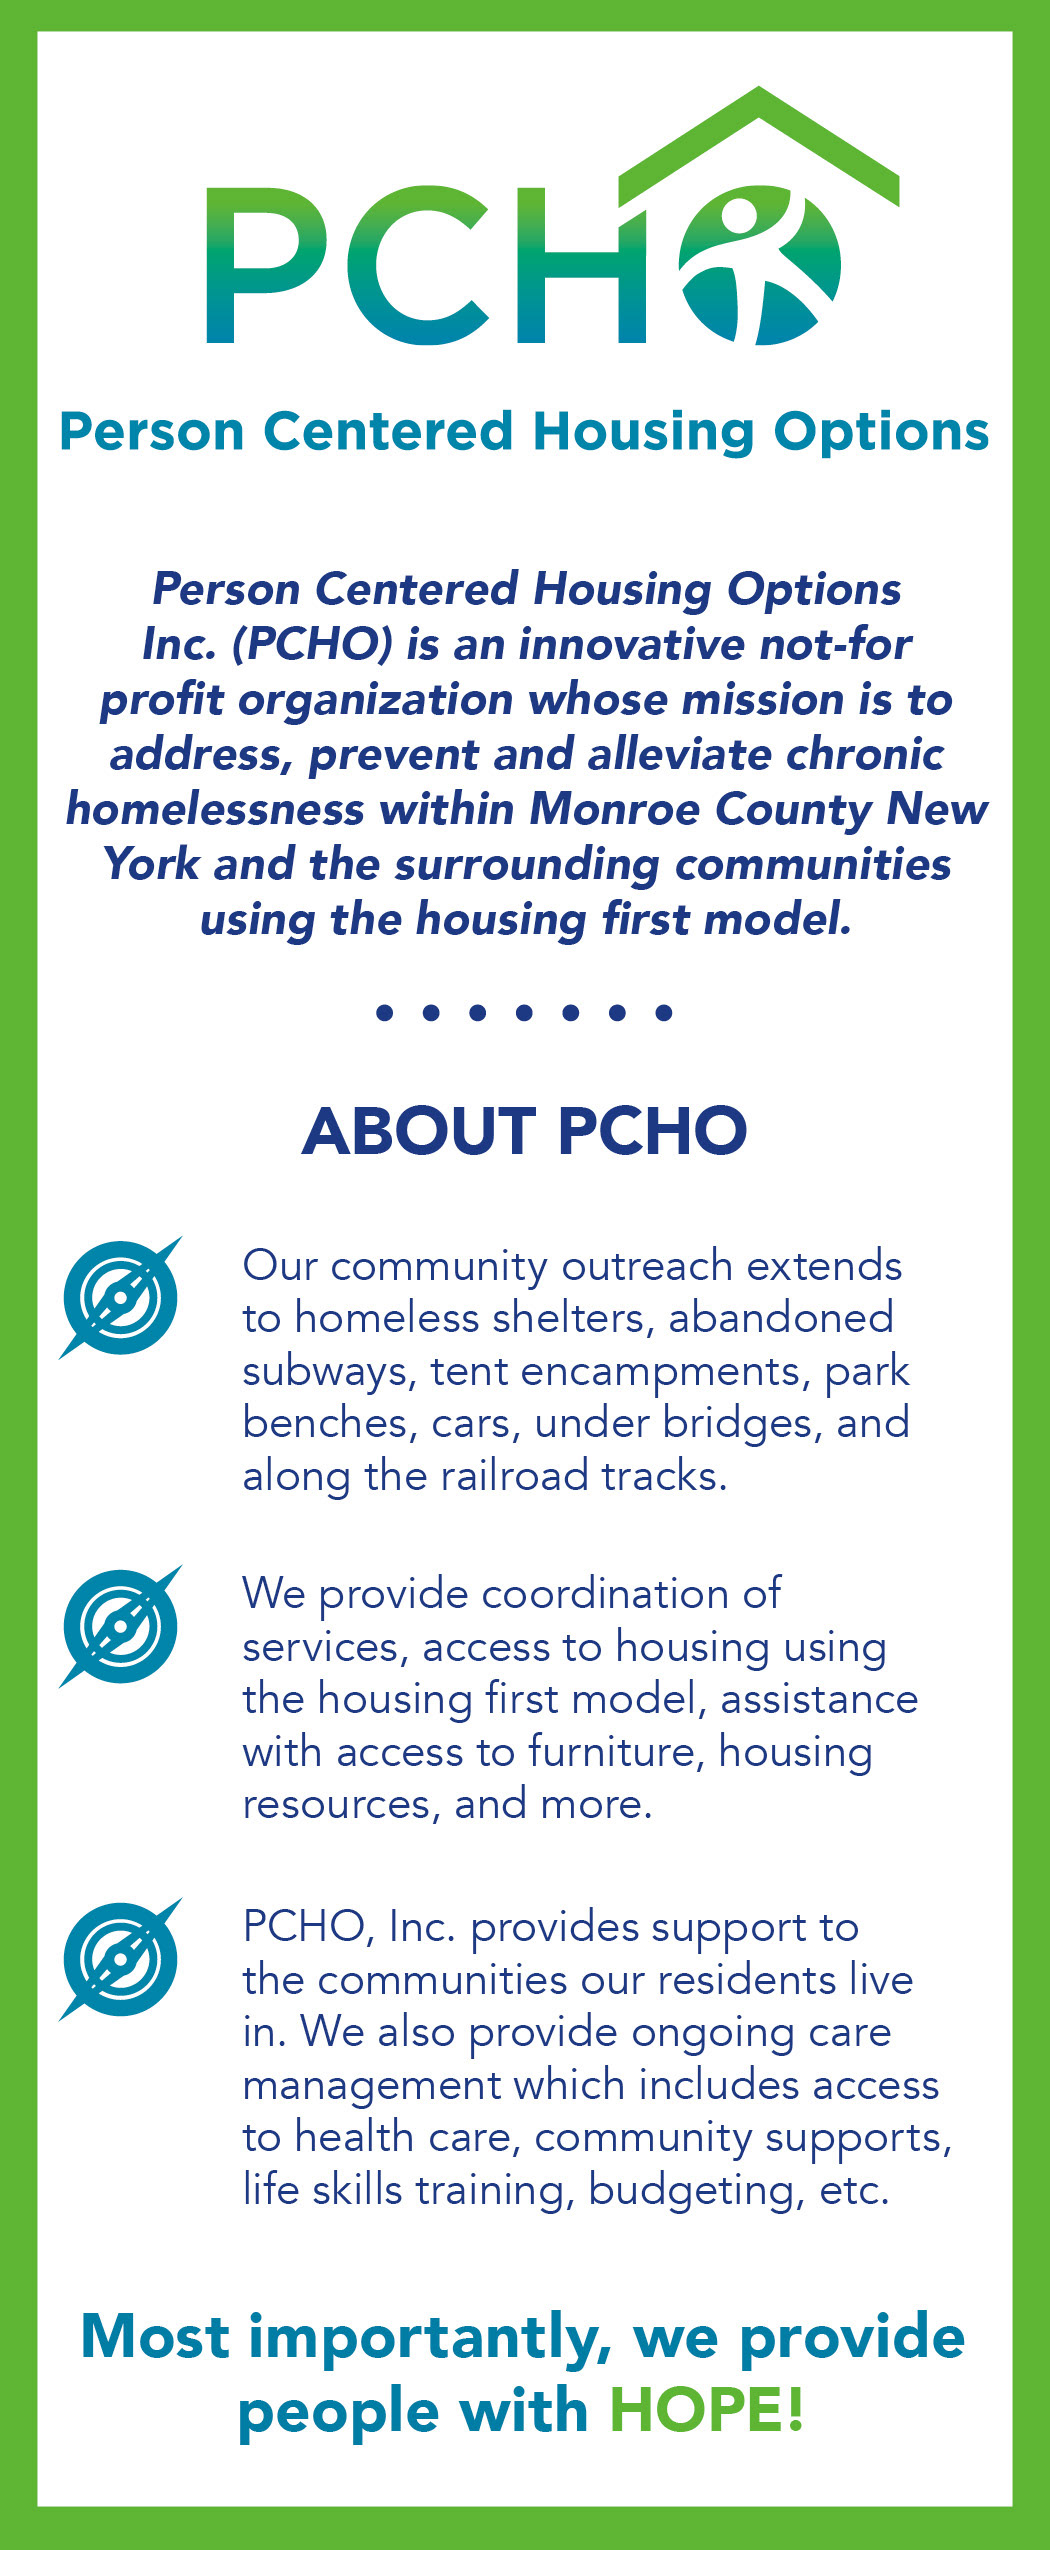 Kim Markell - Person-Centered Housing Options (PCHO)